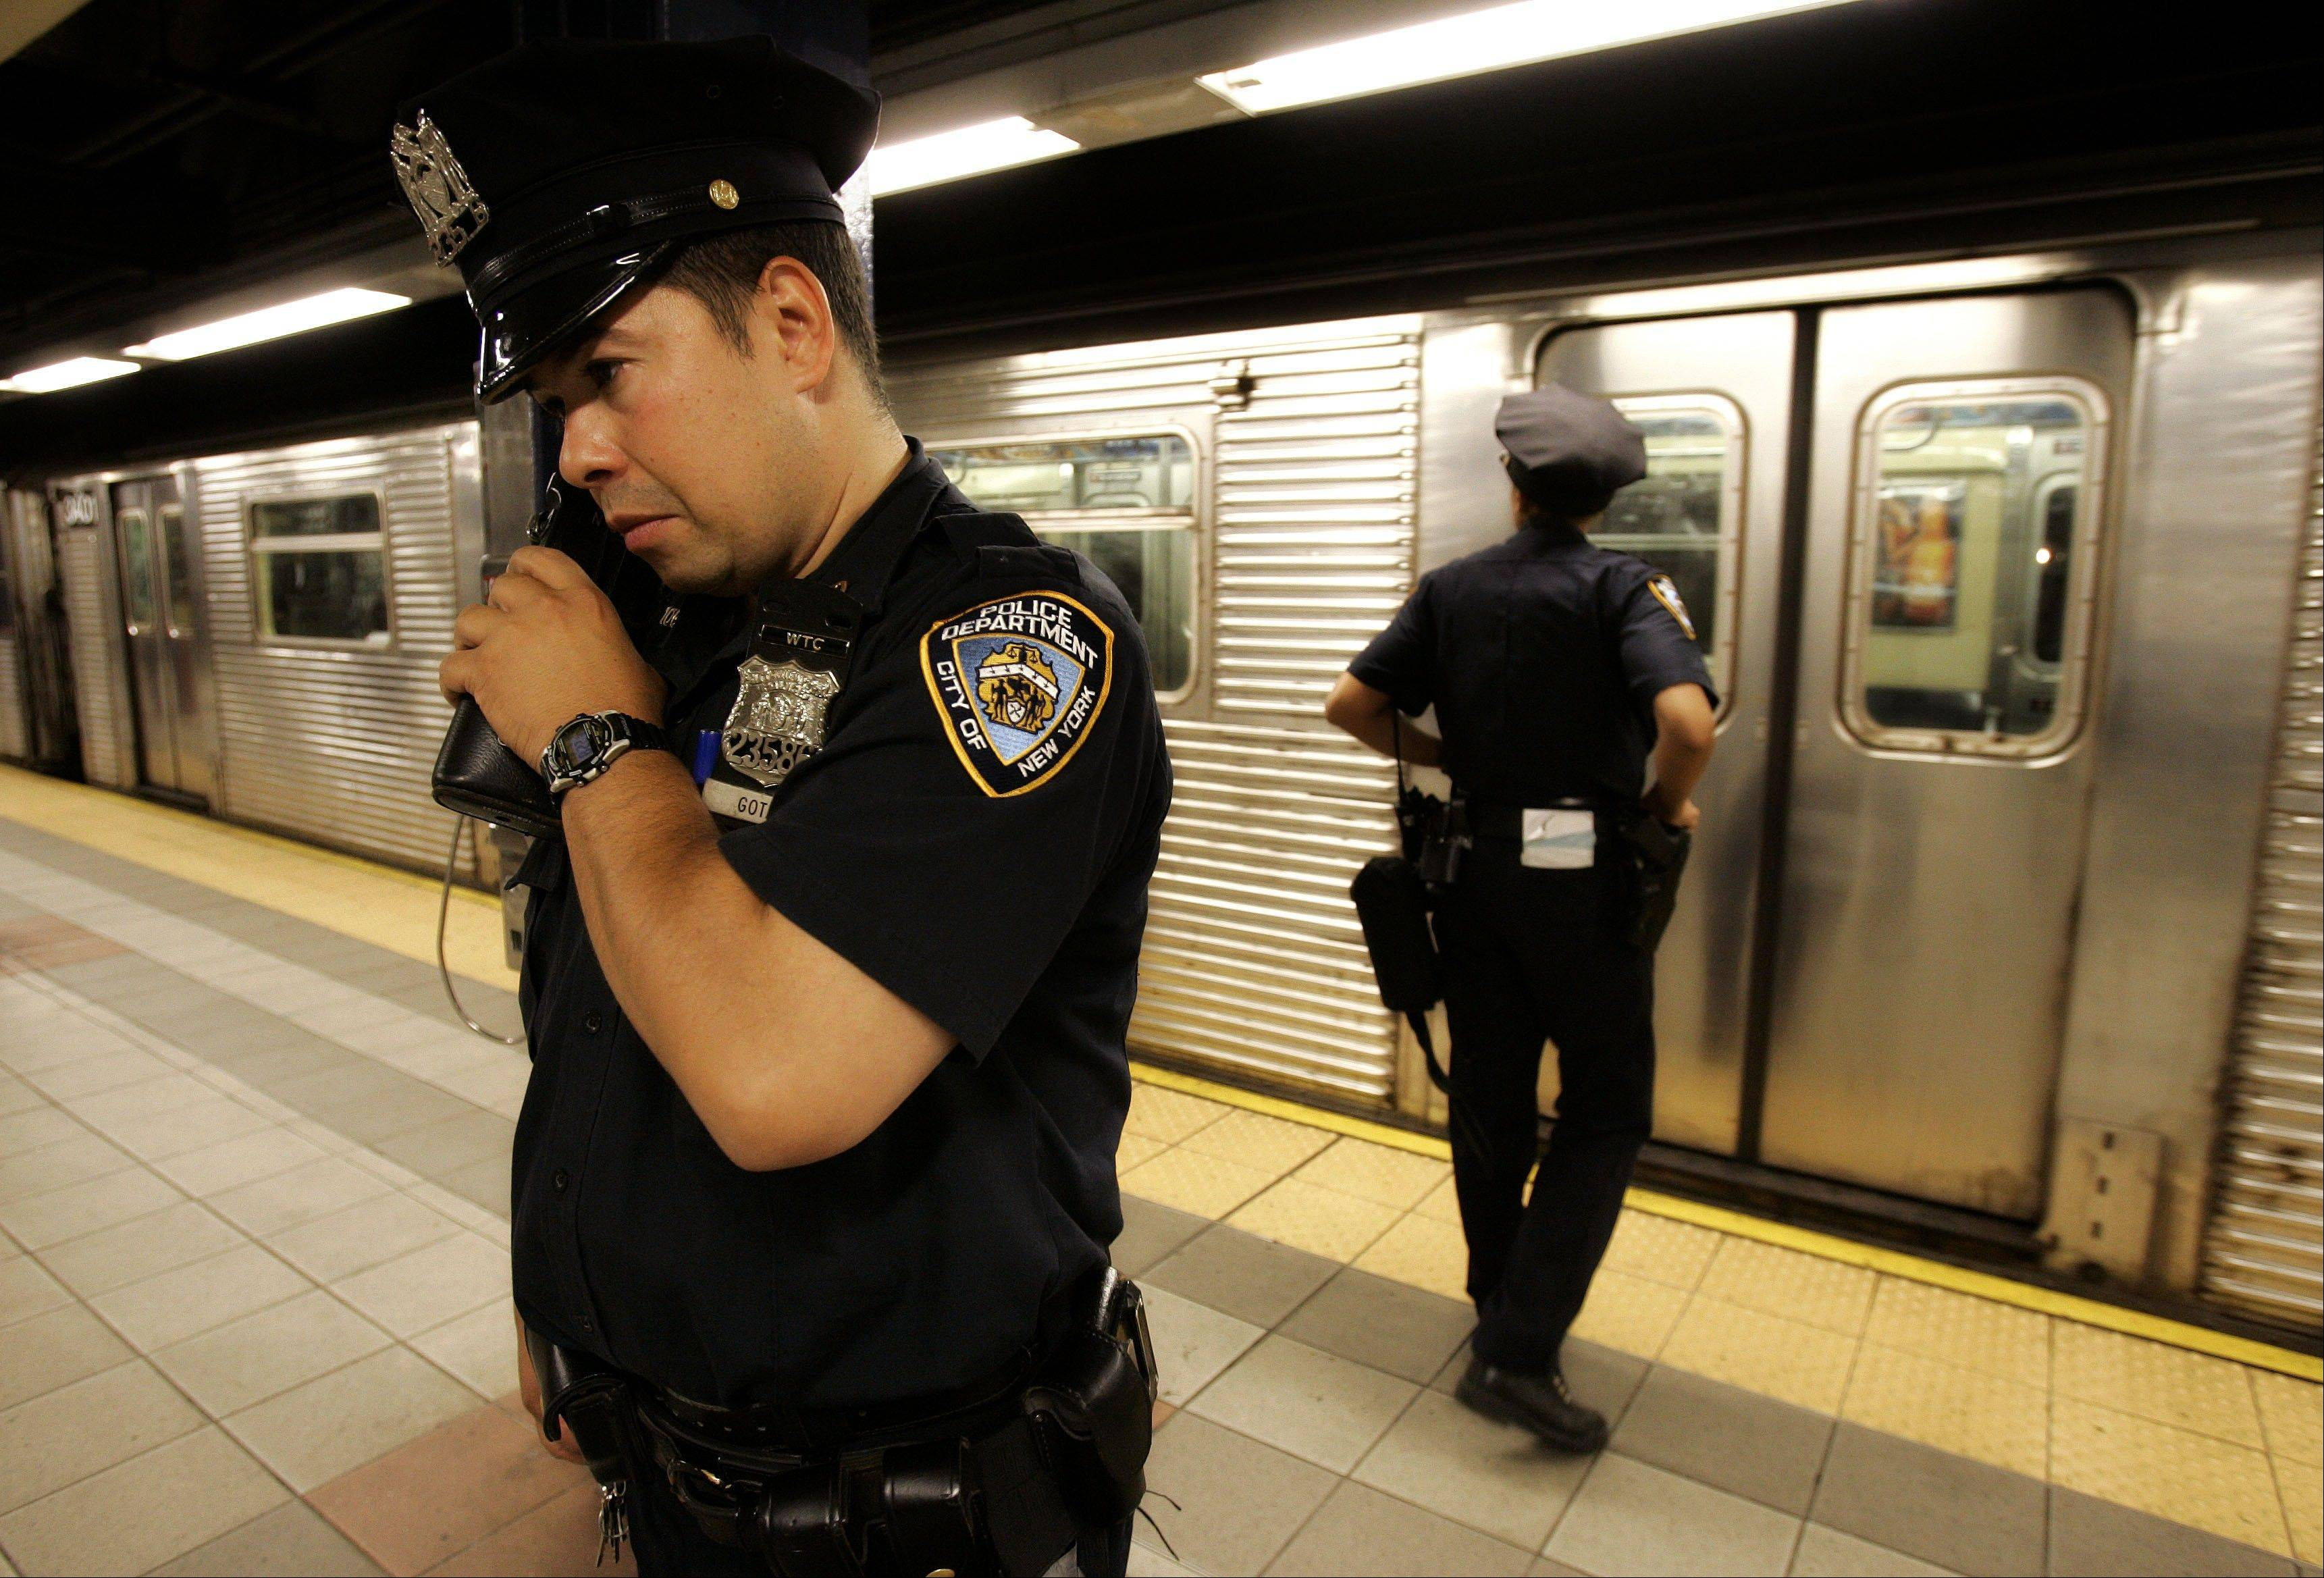 New York police officer Frank Gotay listens to a message on his radio as his partner Yolanda Cortes waits for a subway car's doors to open while performing random checks along the platform at the 42nd Street station in New York.